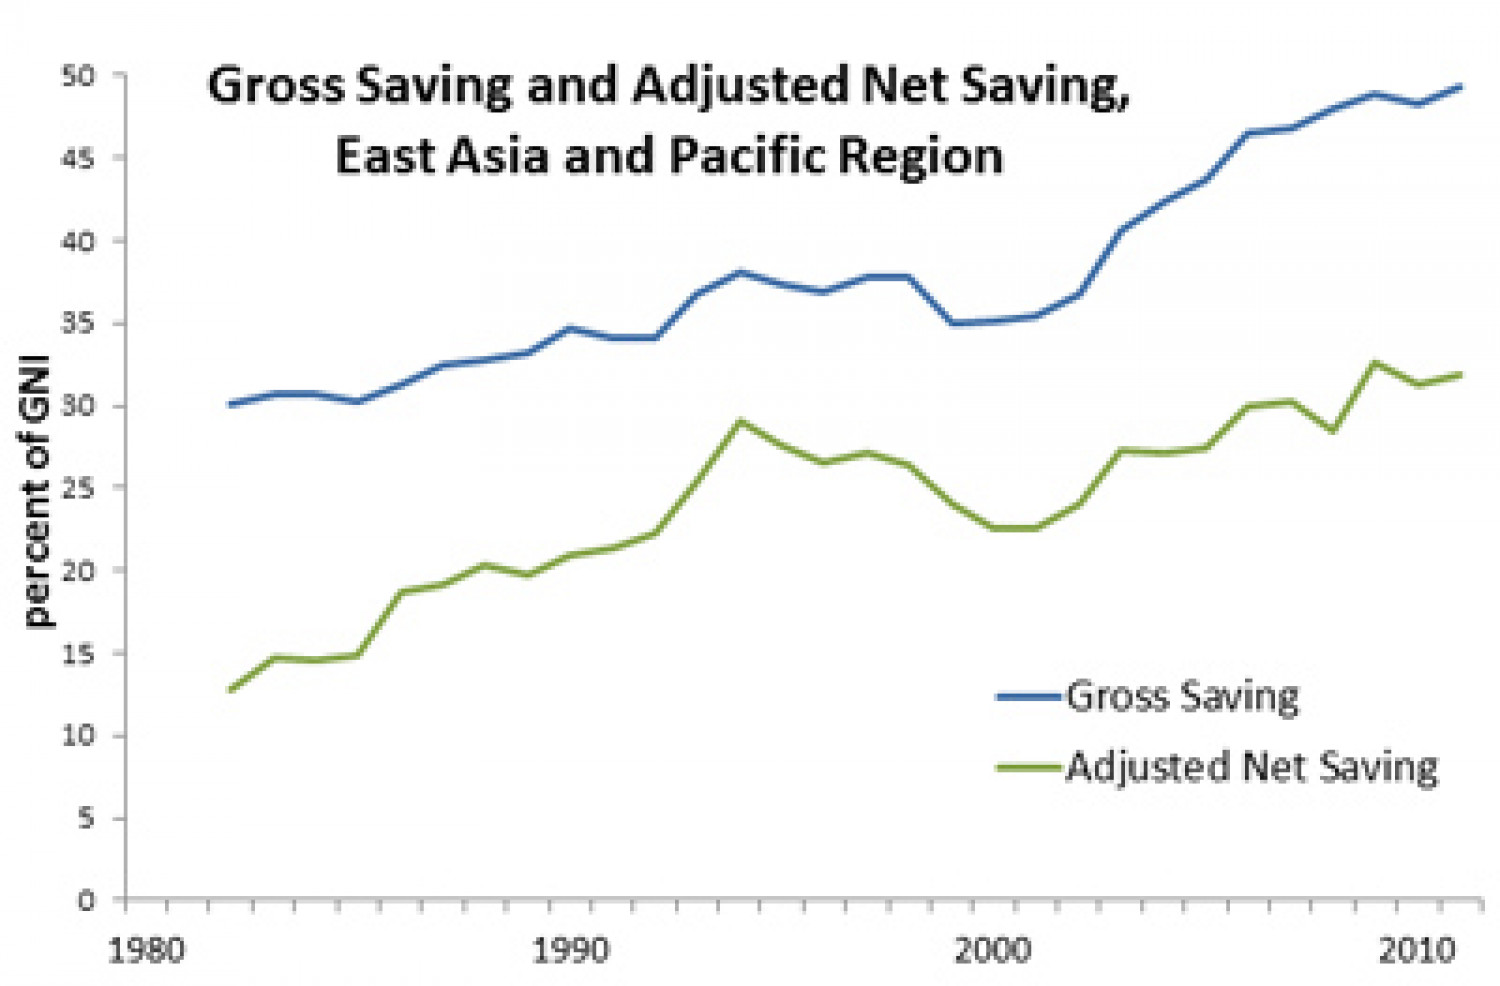 Gross Saving and Adjusted Net Saving, East Asia and the Pacific Infographic